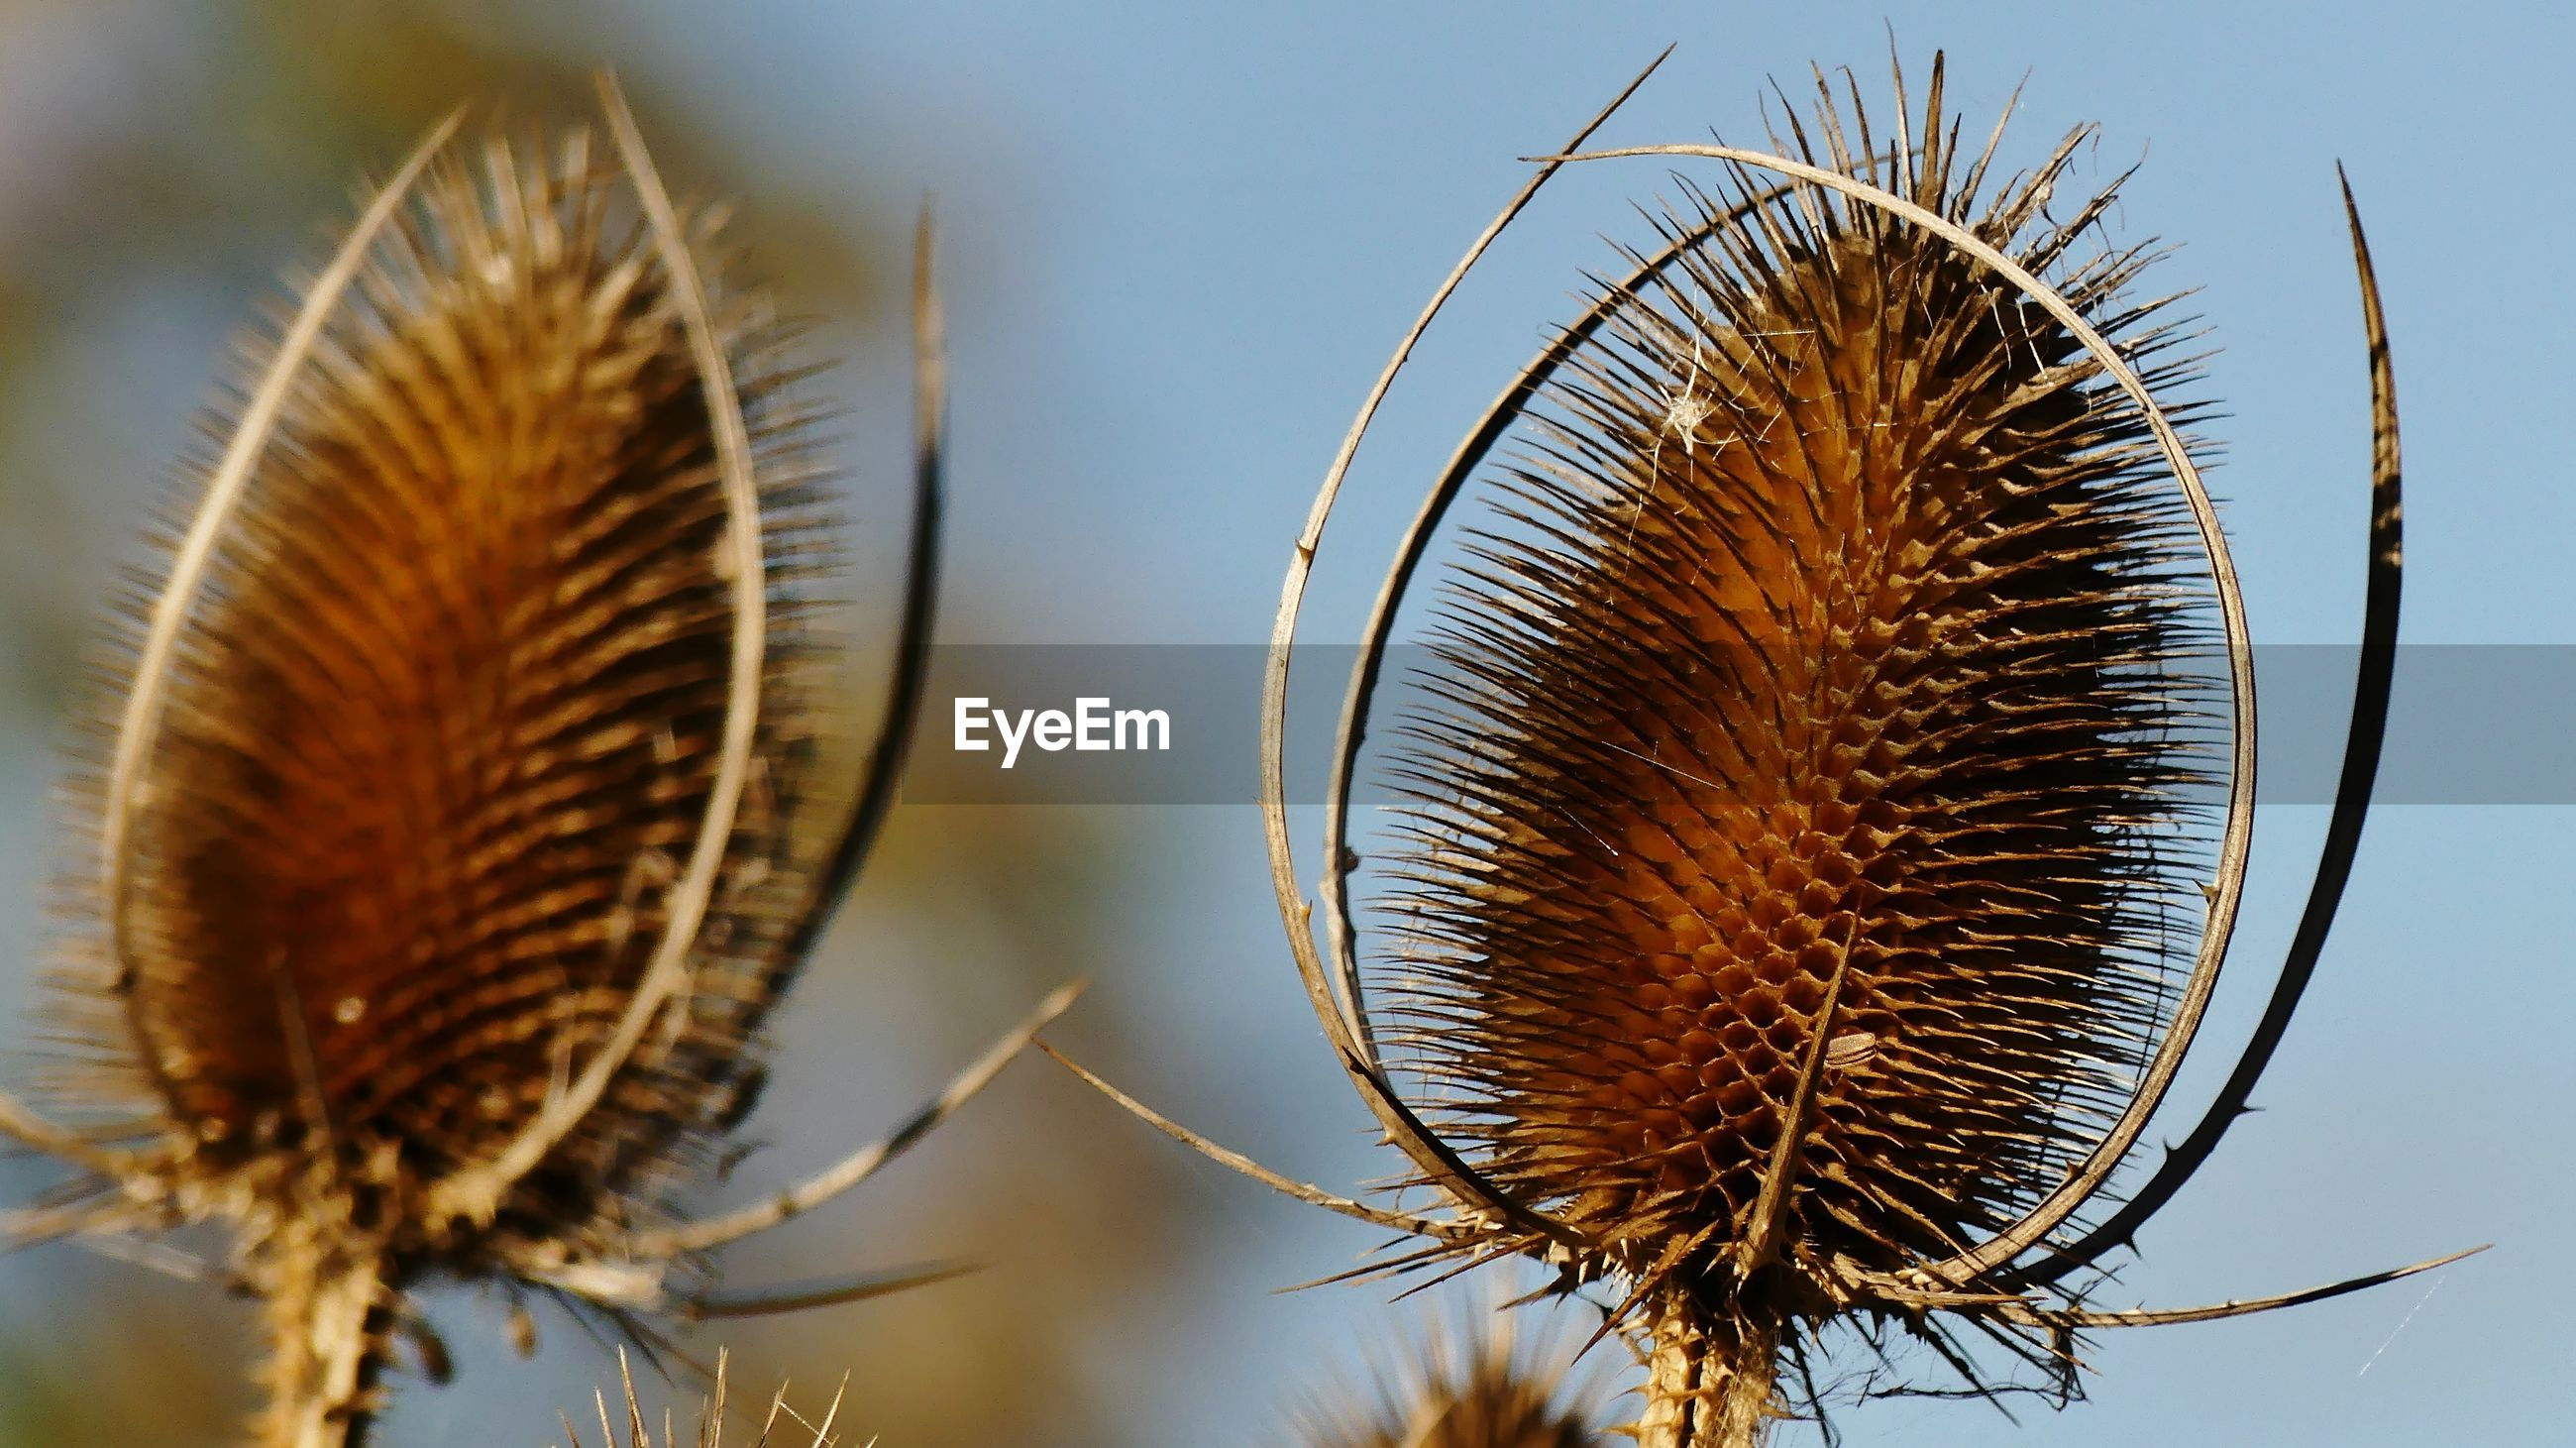 CLOSE-UP OF DRY THISTLE PLANT